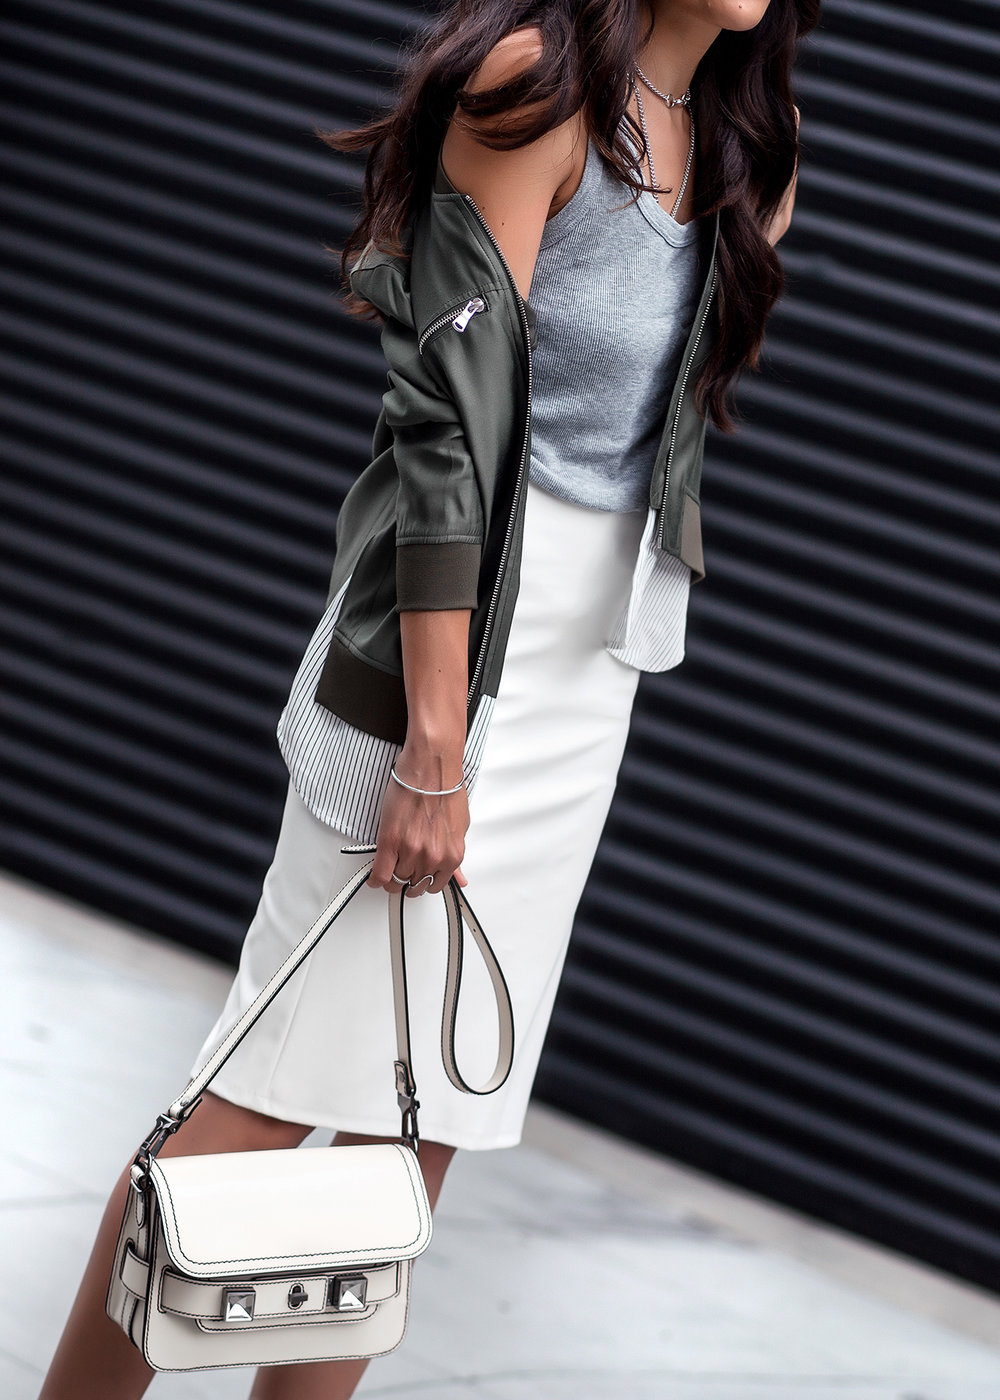 Composure_by_Kelly_White_Leather_Skirt_Proenza_PS1_Nordstrom.jpg